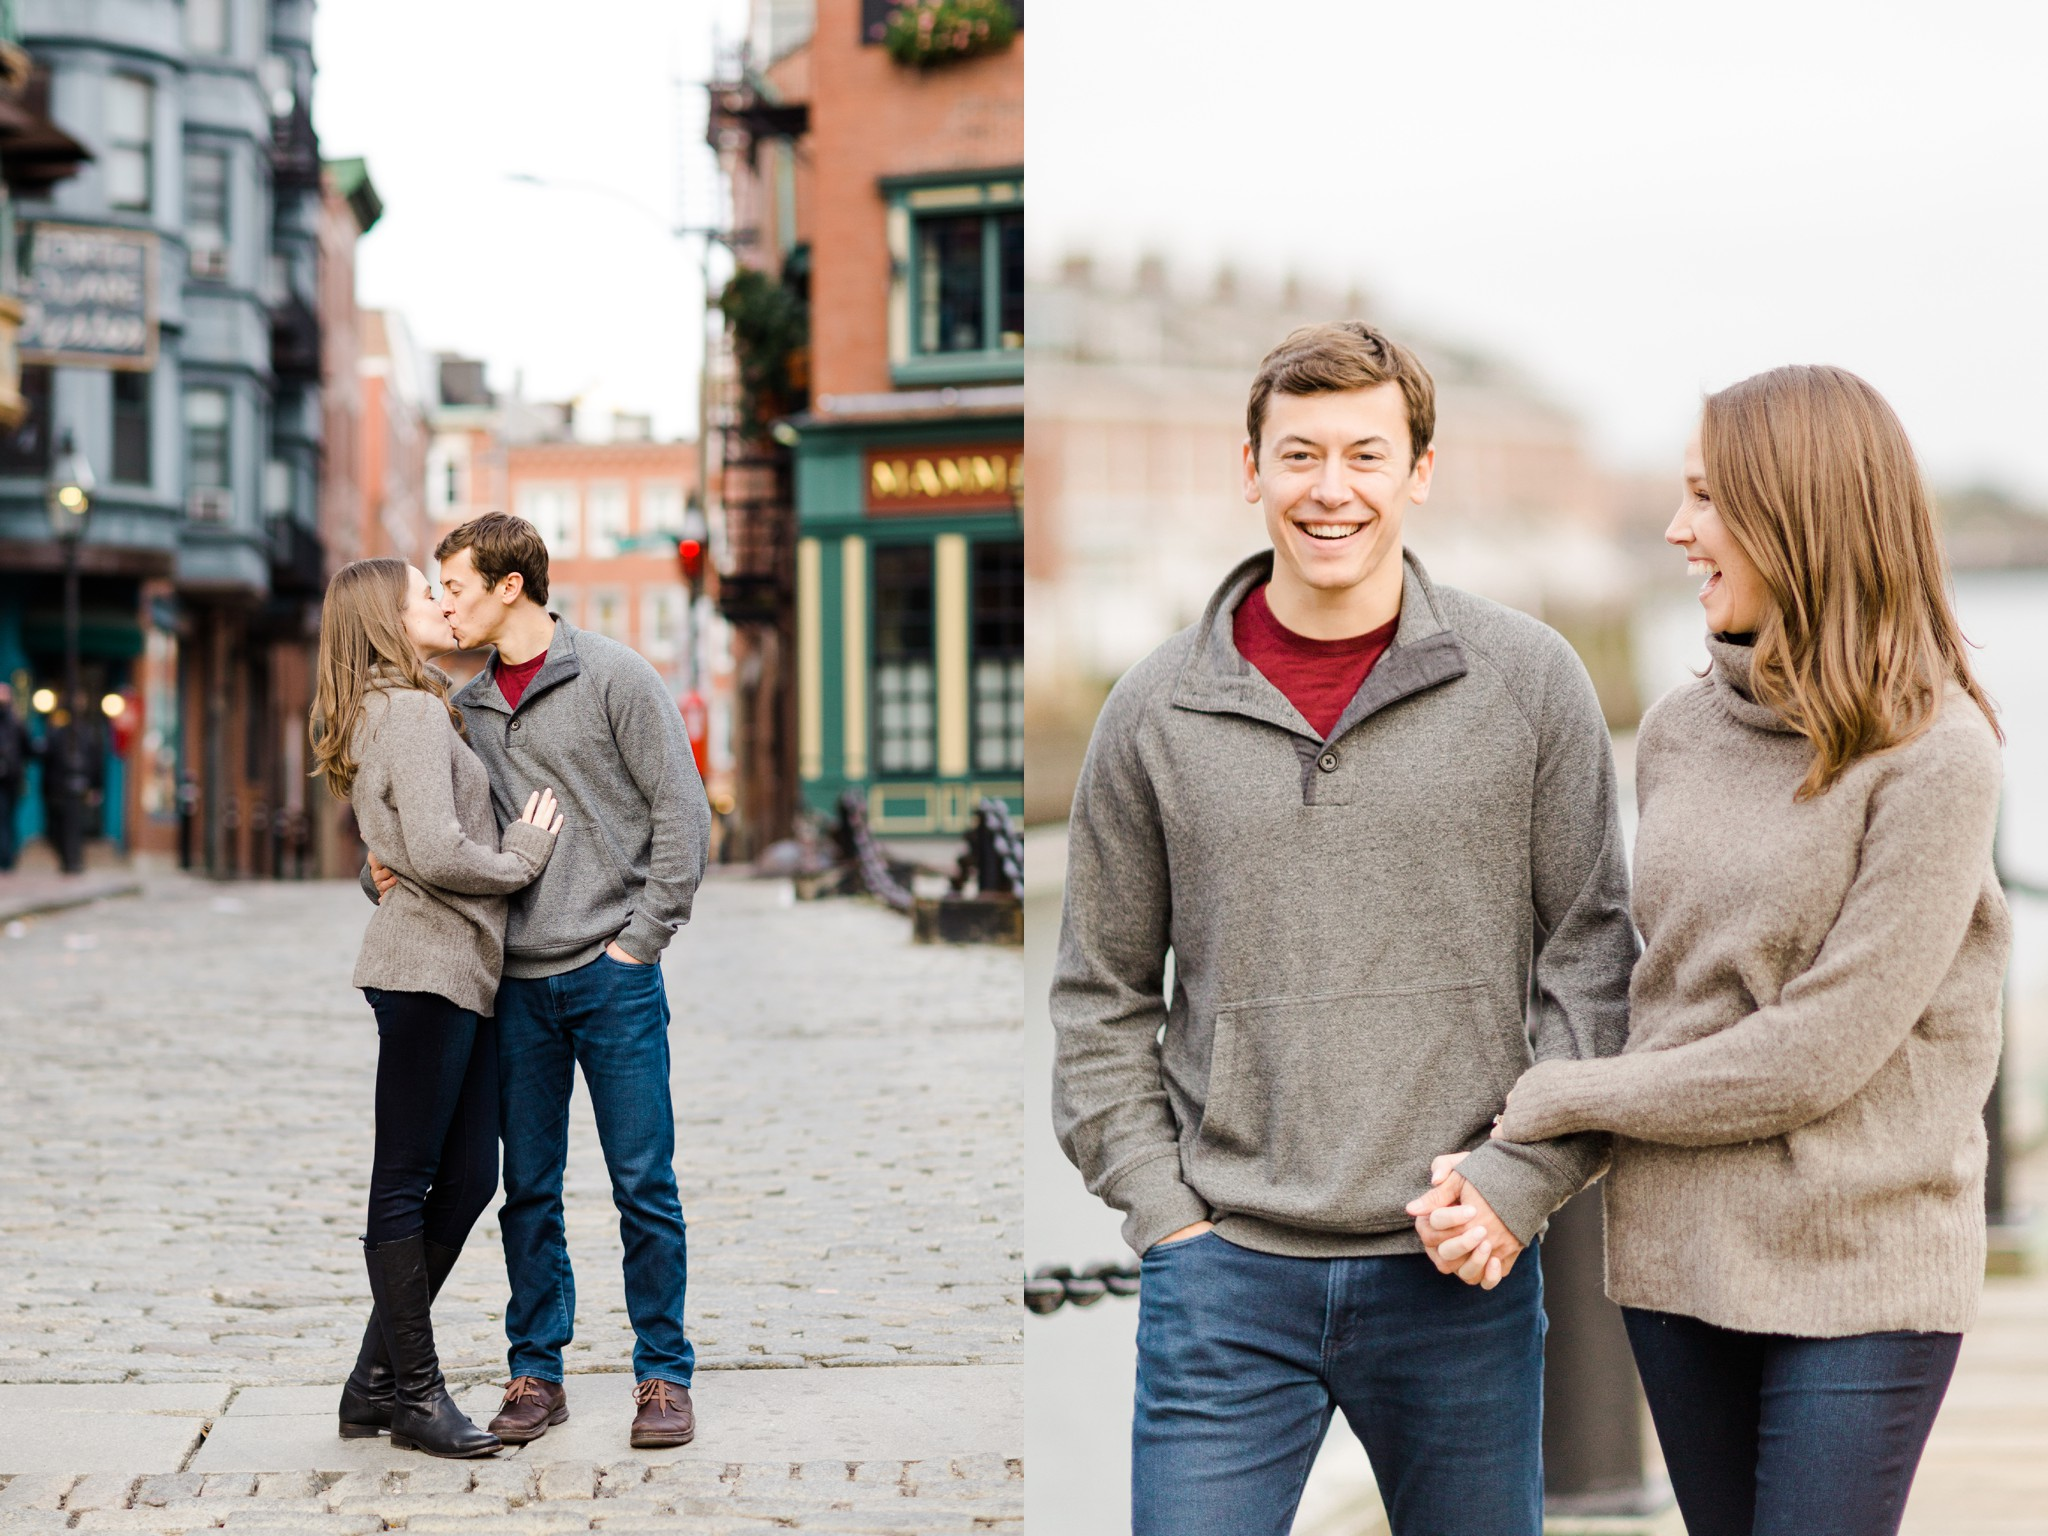 deborah_zoe_photography_engagement_session_0126.JPG